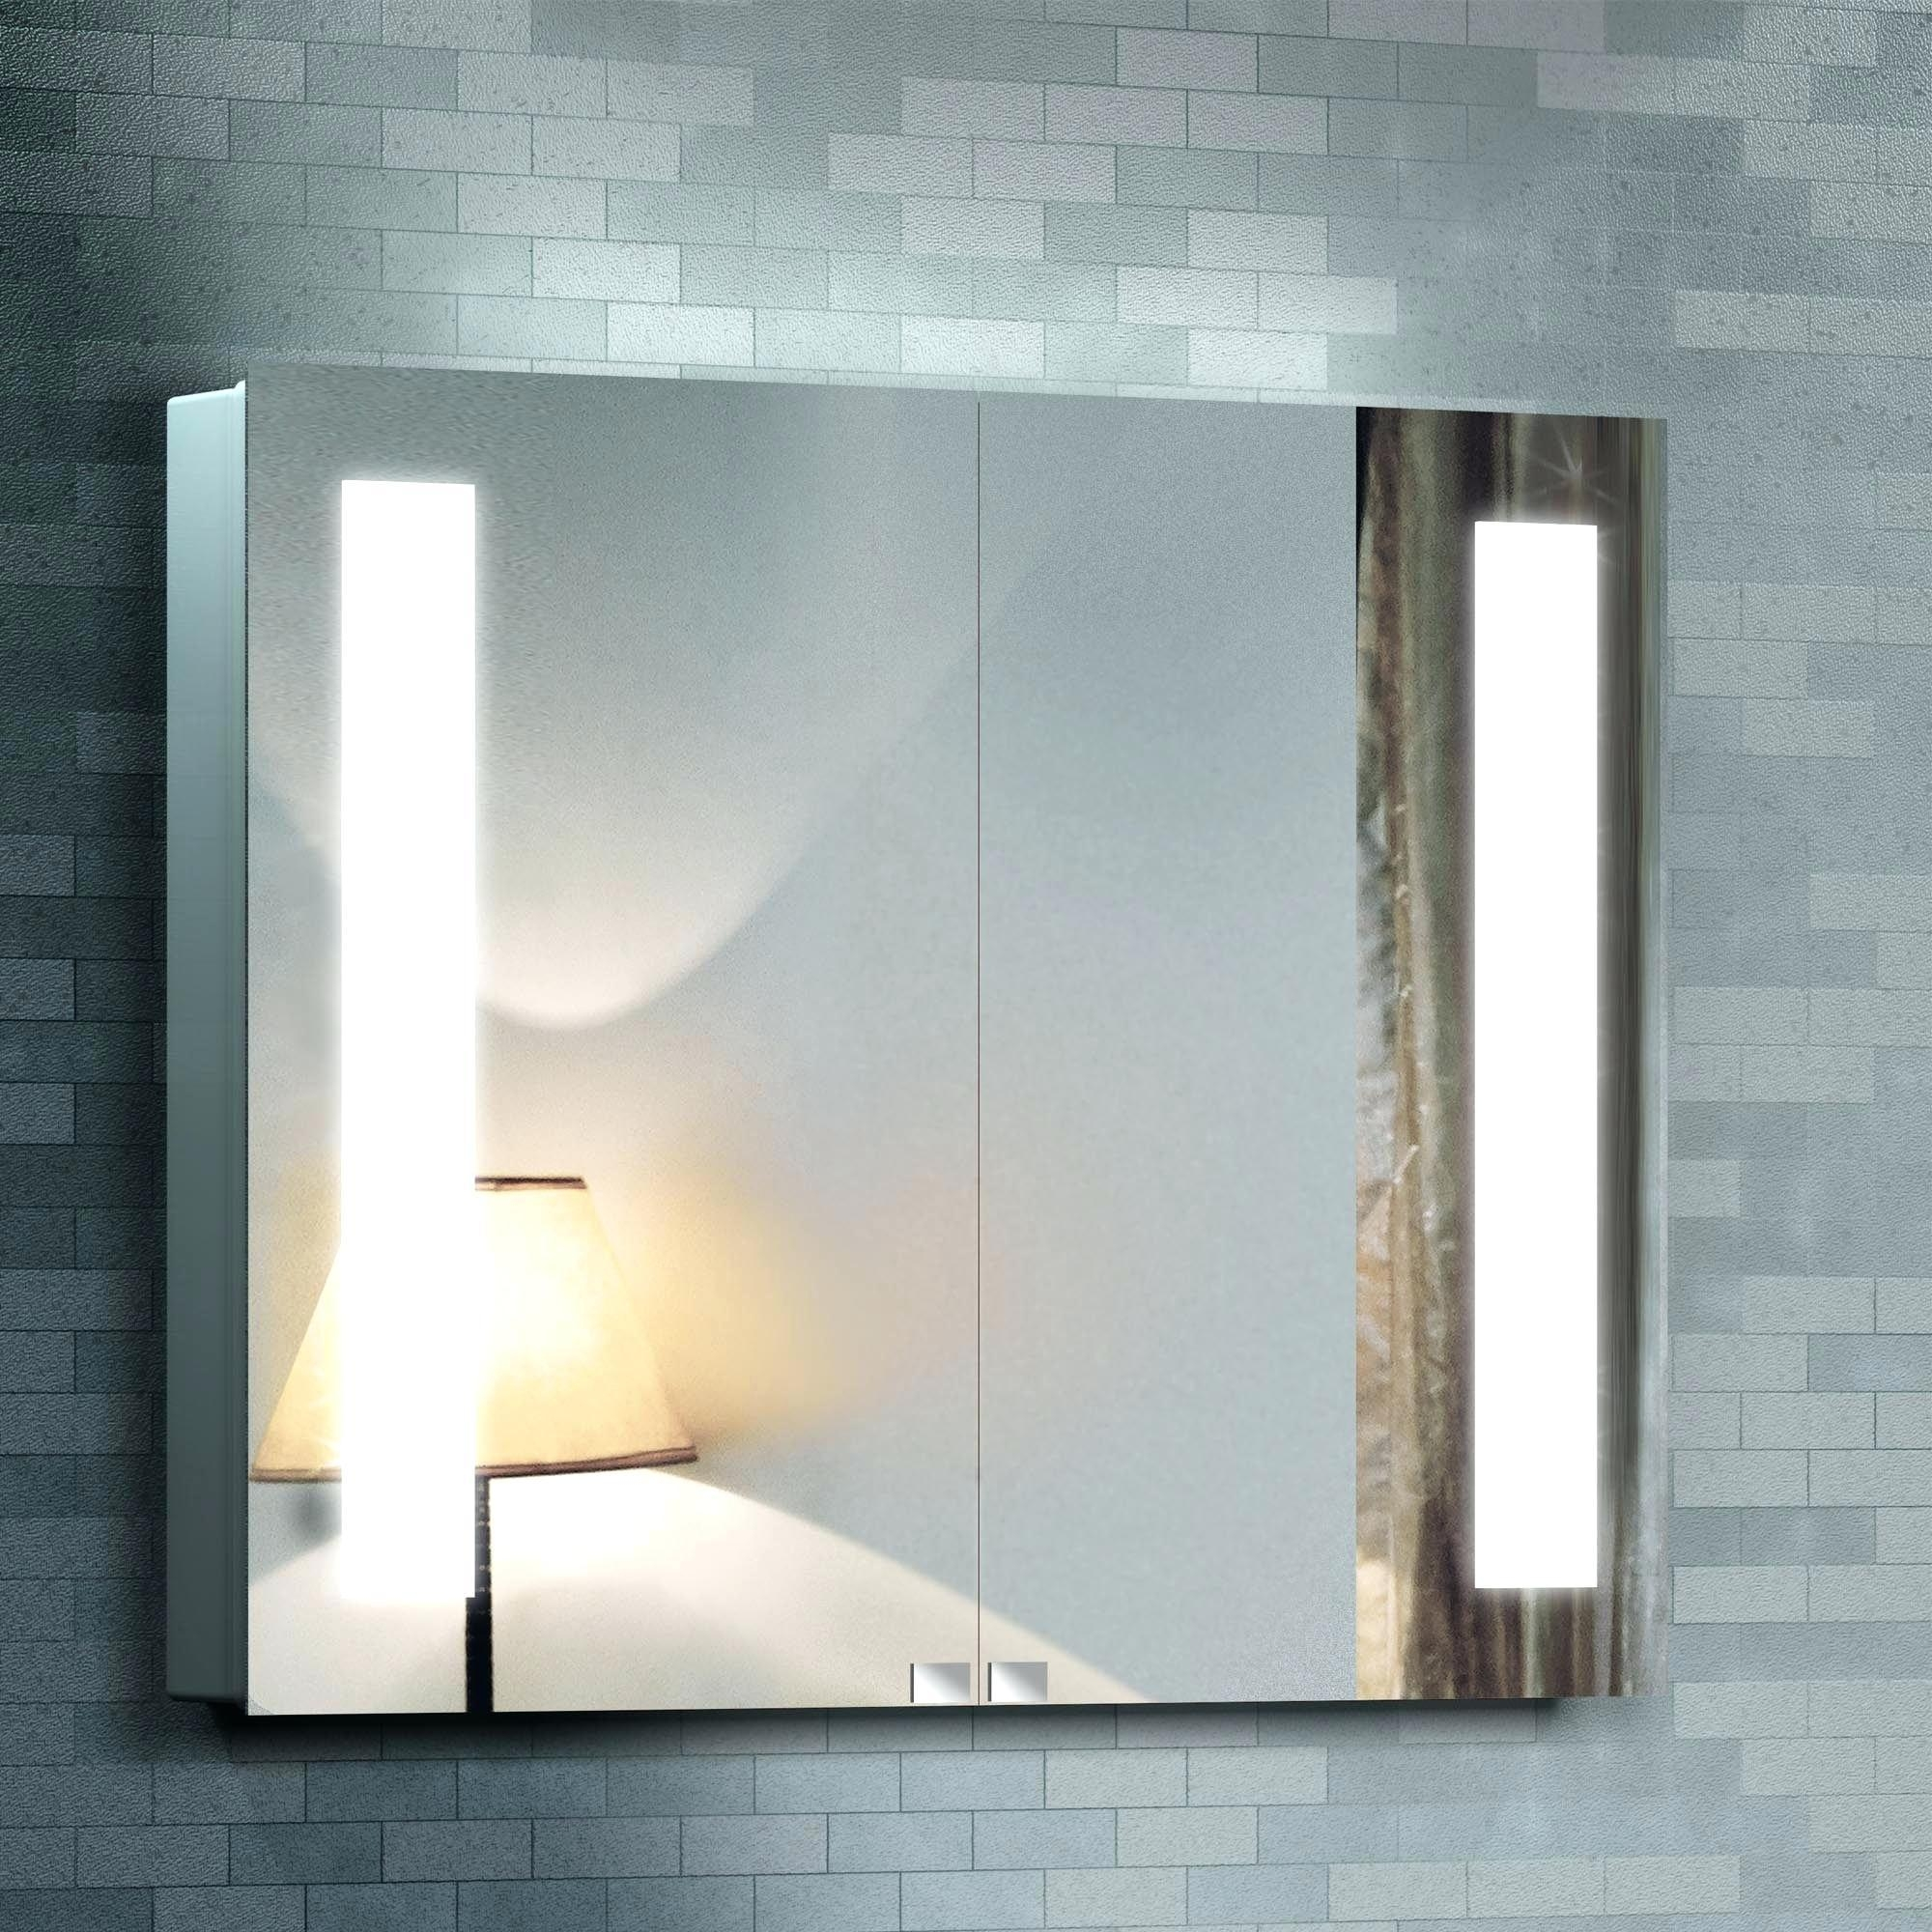 Bathroom Mirrors And Lighting 20 Inspirations Vanity Mirrors With Built In Lights